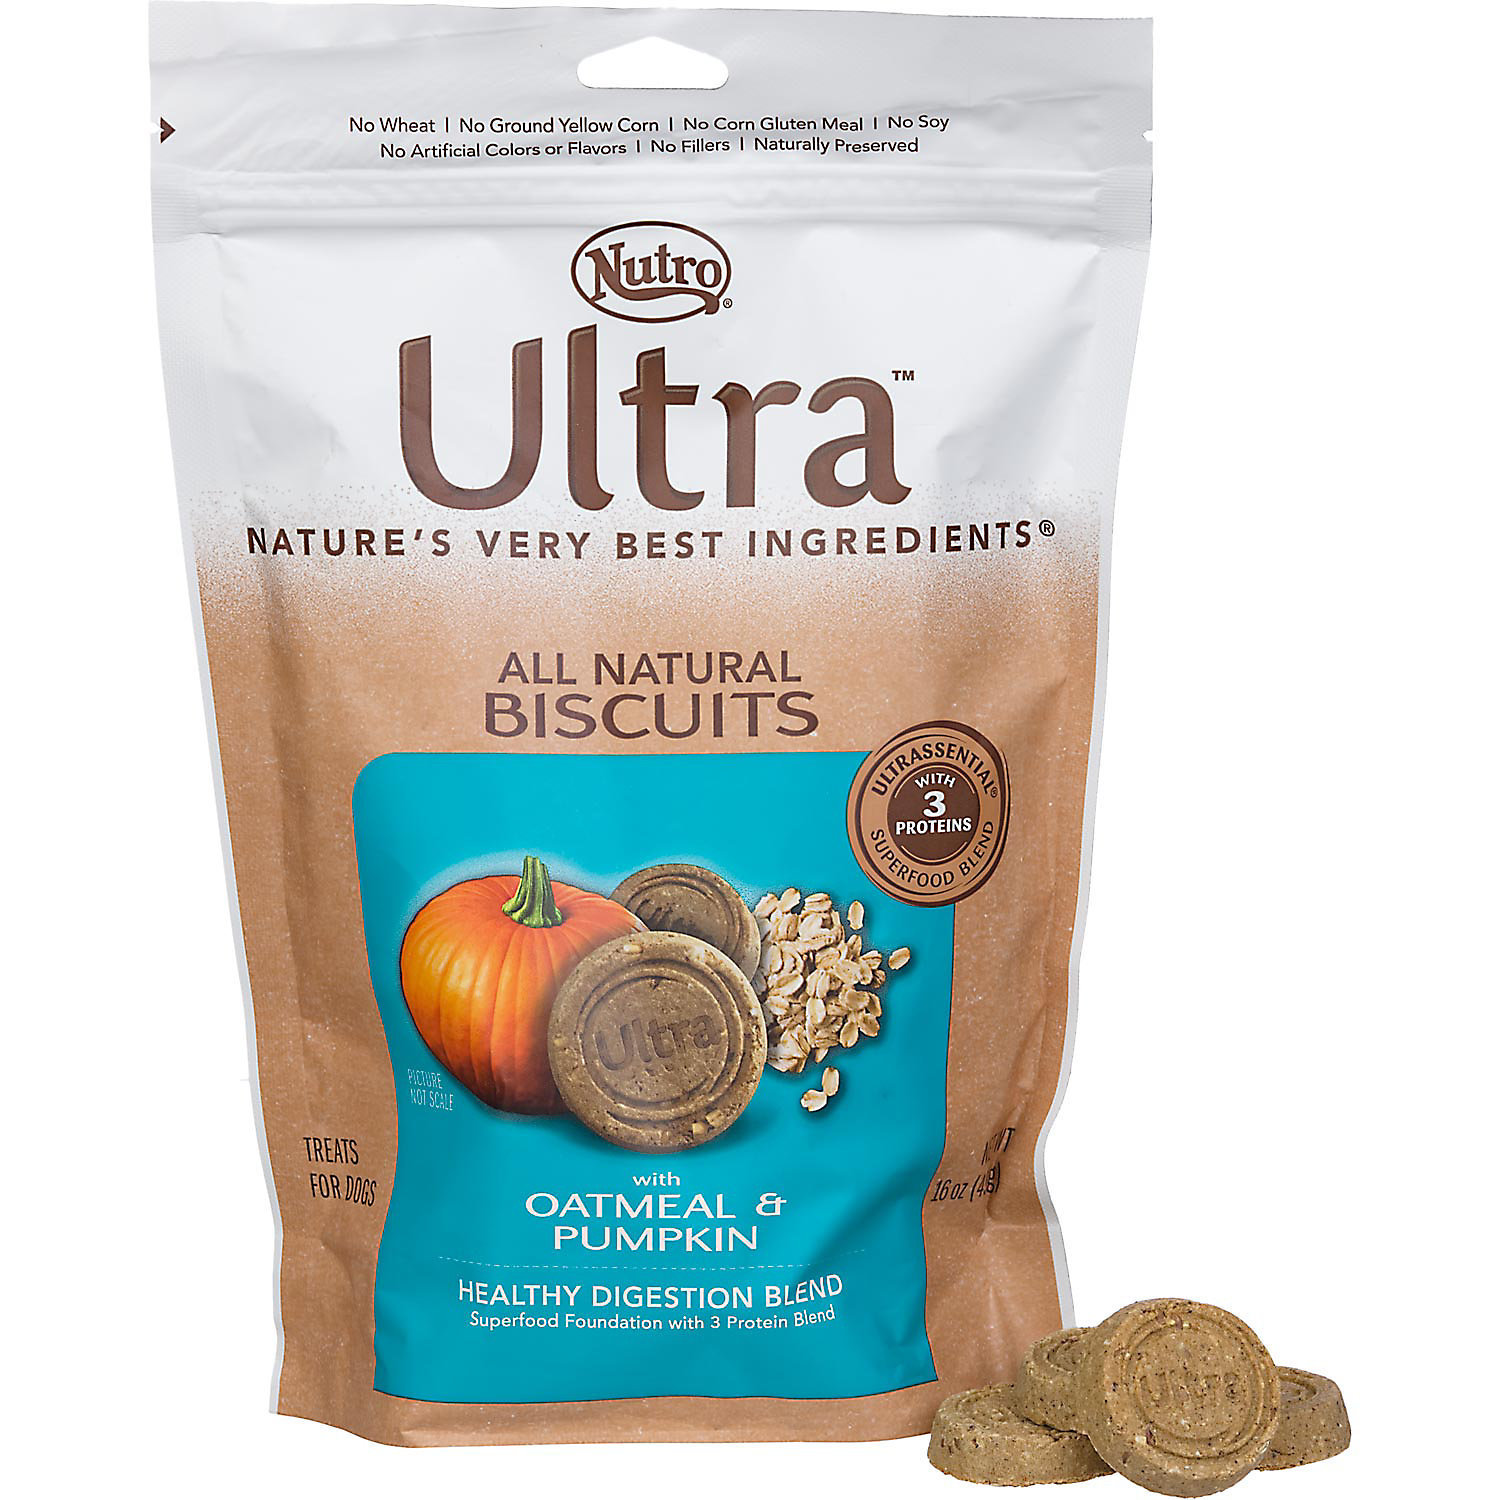 Nutro Ultra Healthy Digestion Adult Dog Biscuits (16 oz. Oatmeal & Pumpkin) (12/18) (A.P1)